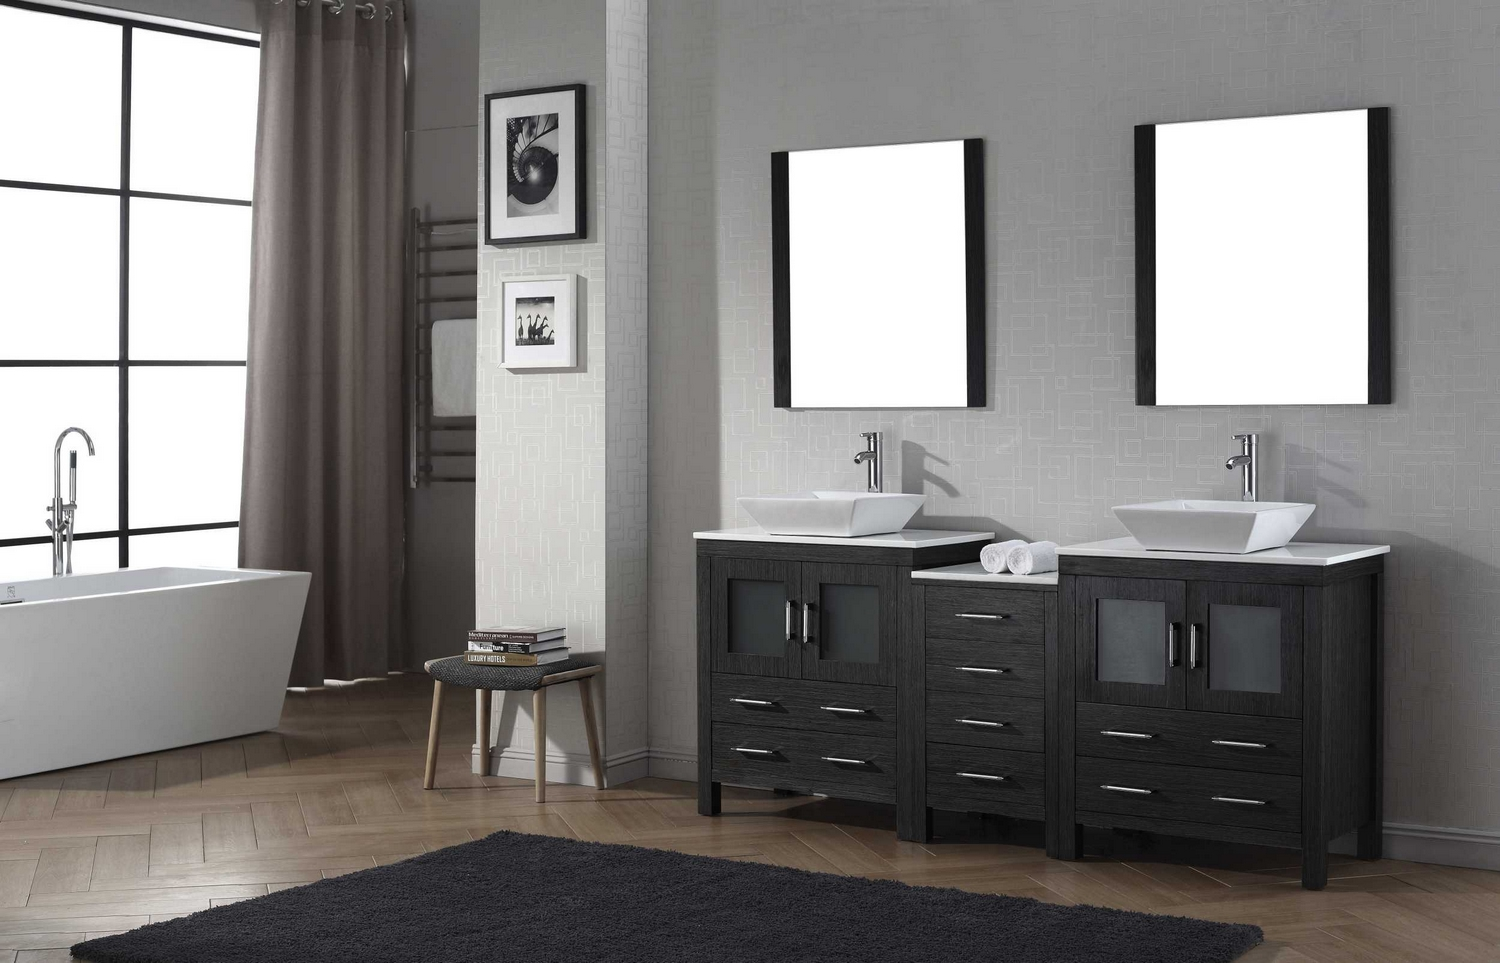 virtu usa dior 78 double bathroom vanity cabinet set in espresso pure